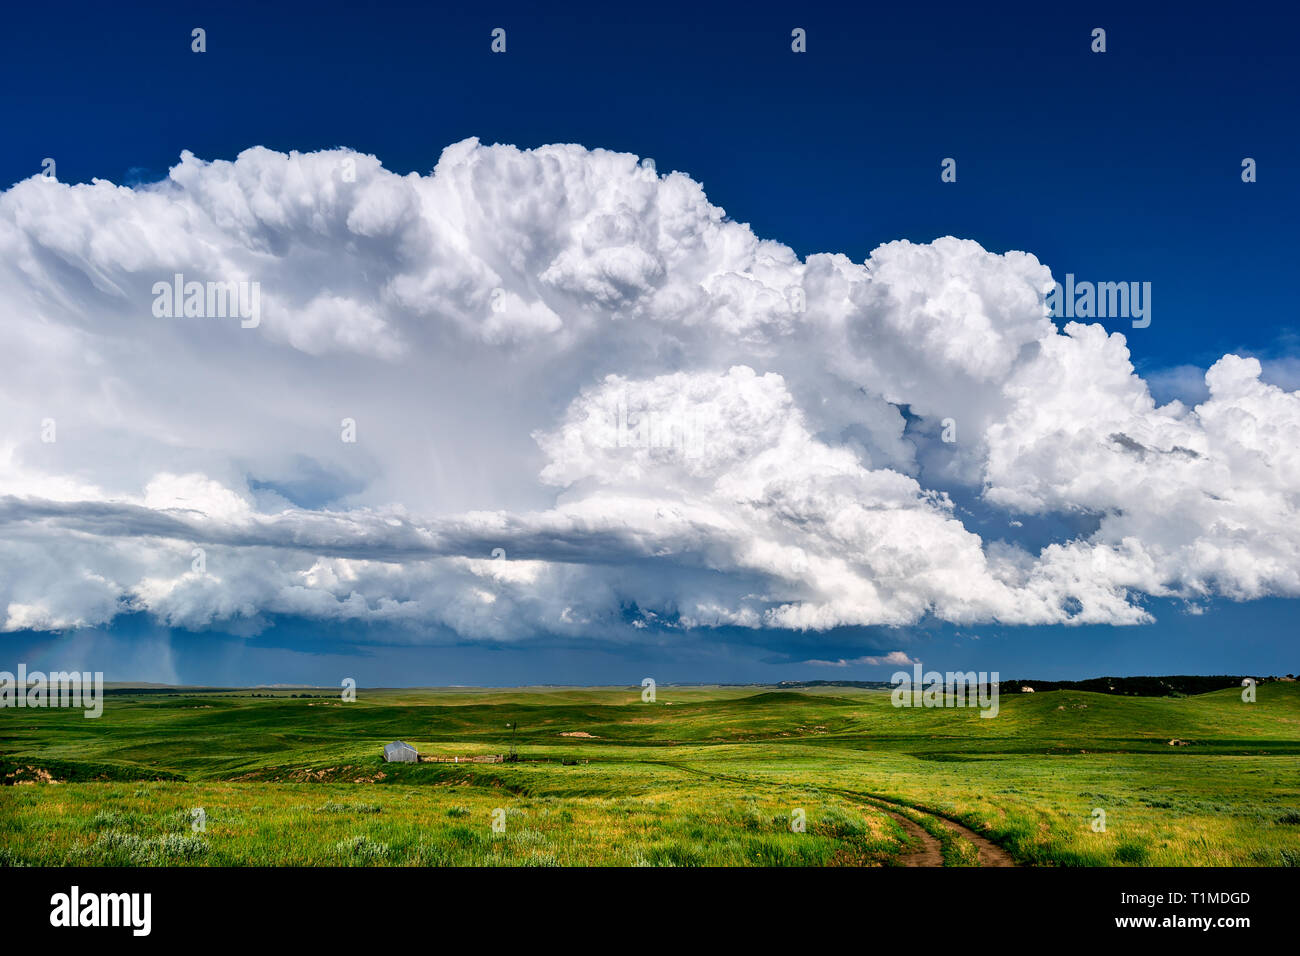 Thunderstorm clouds - Stock Image